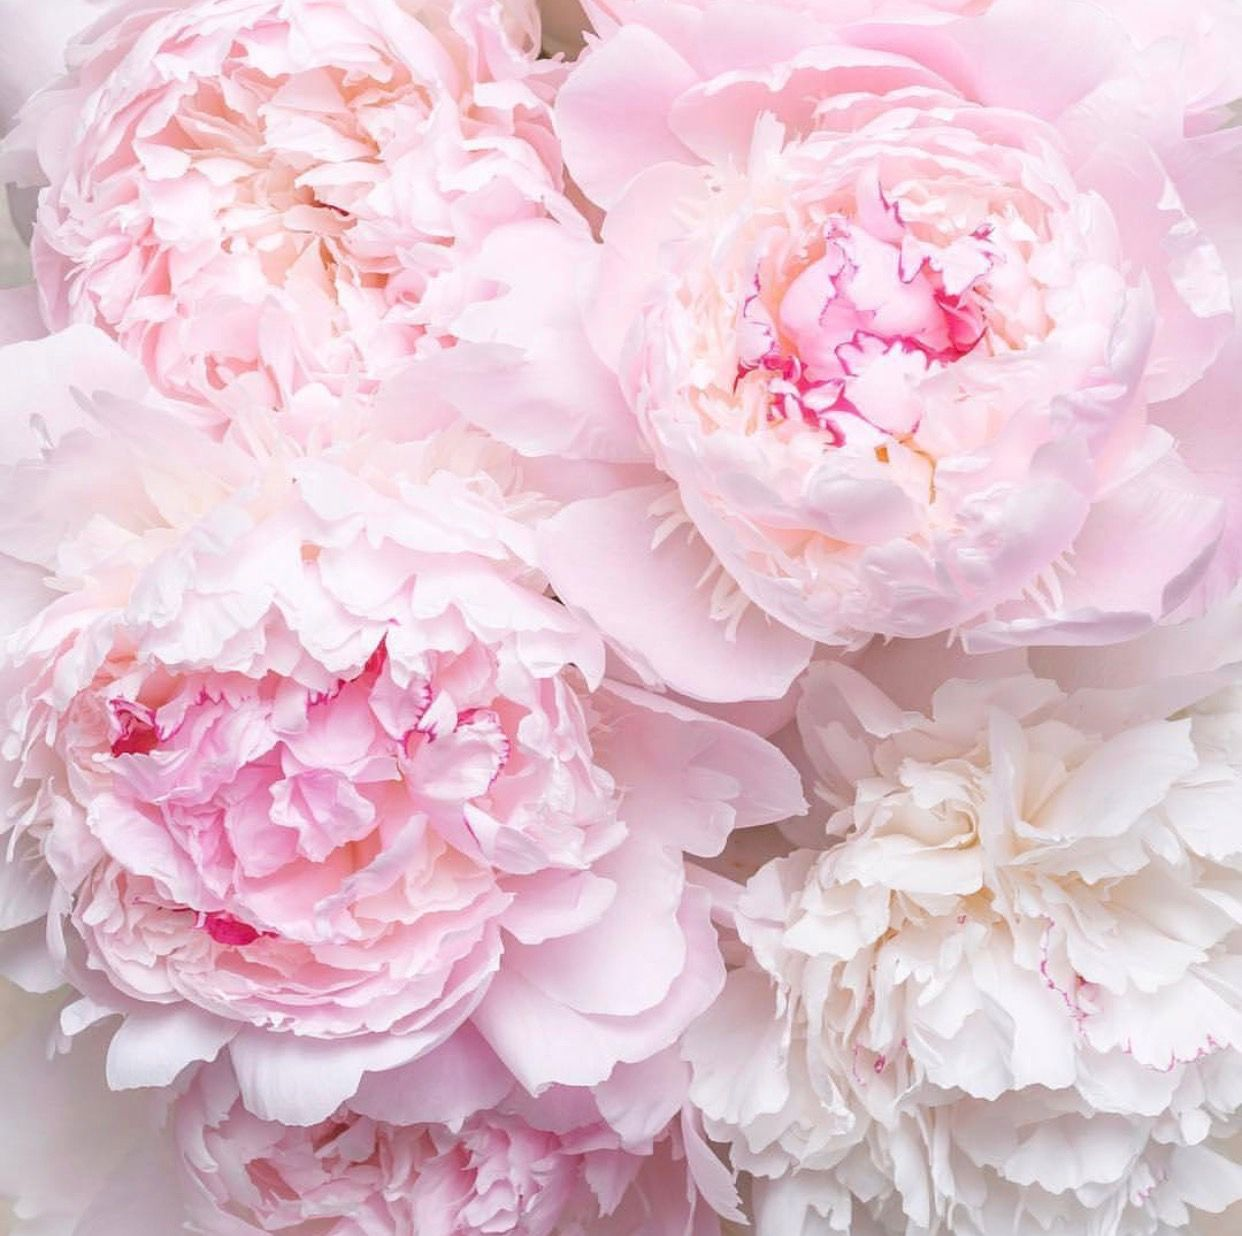 Pin by Michelle Joiner on flowers Pretty flowers